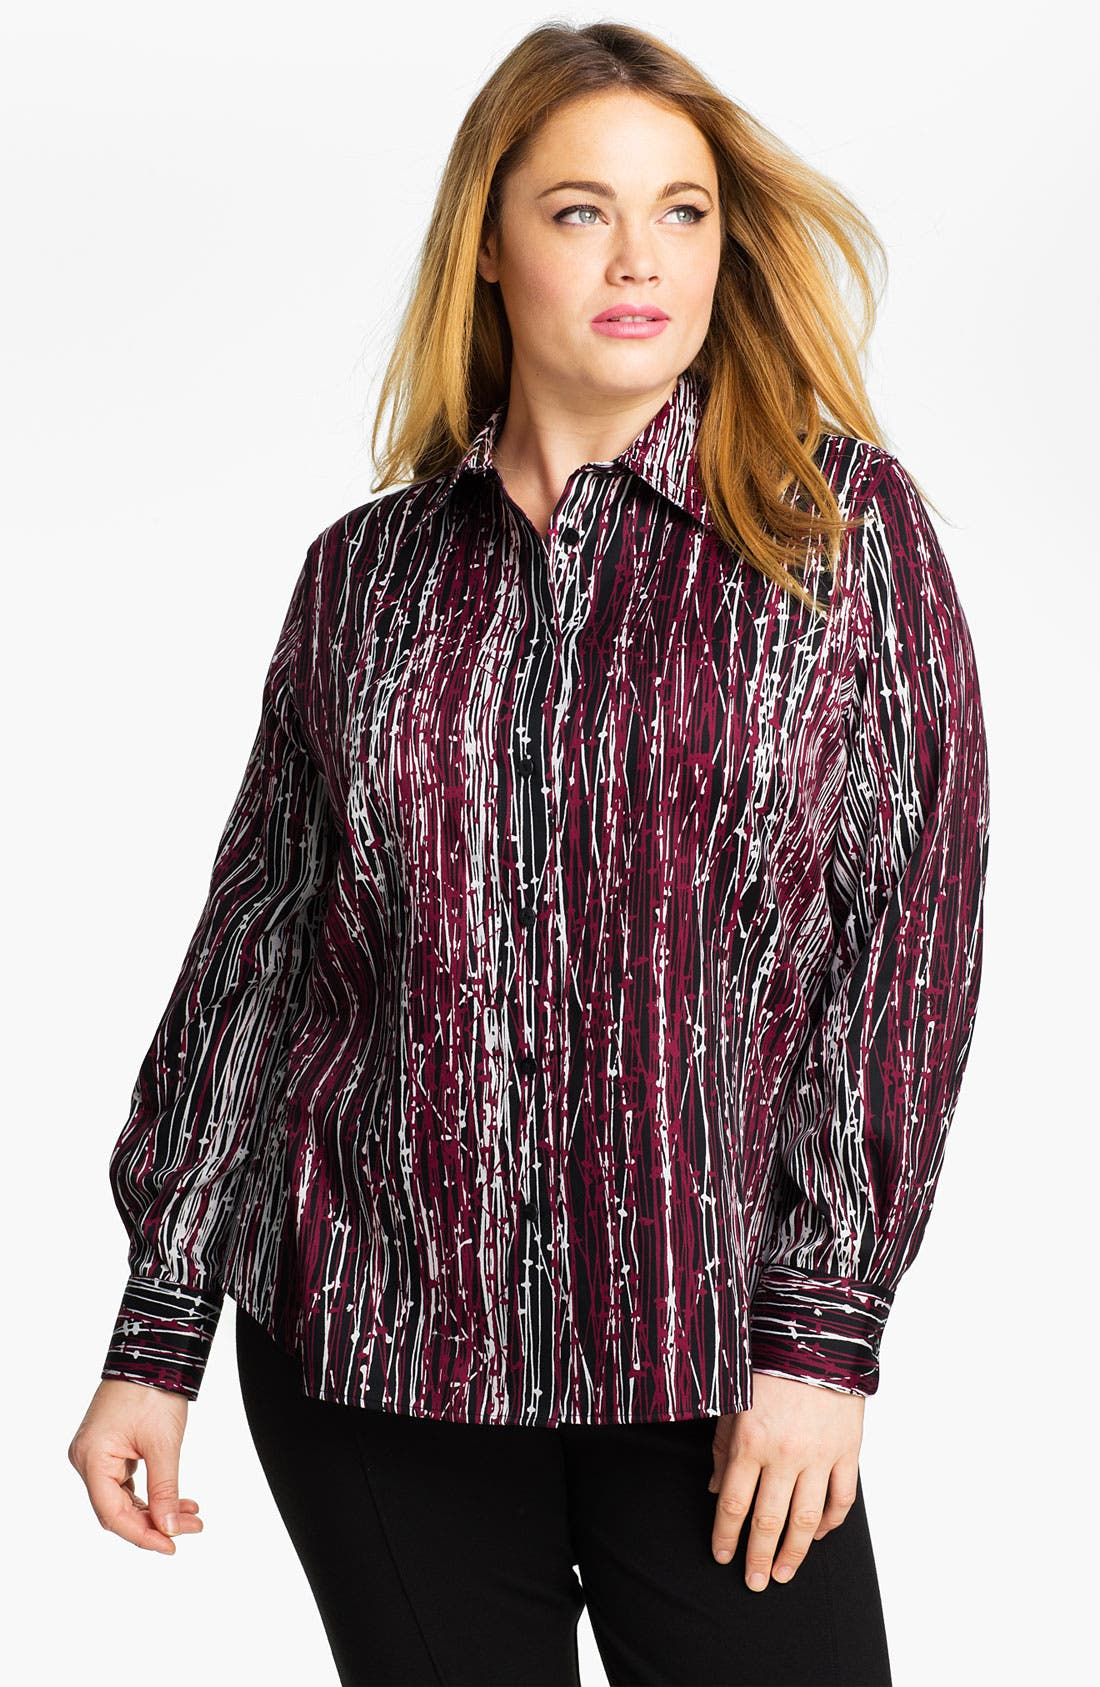 Alternate Image 1 Selected - Foxcroft 'Abstract Twigs' Wrinkle Free Shaped Shirt (Plus)